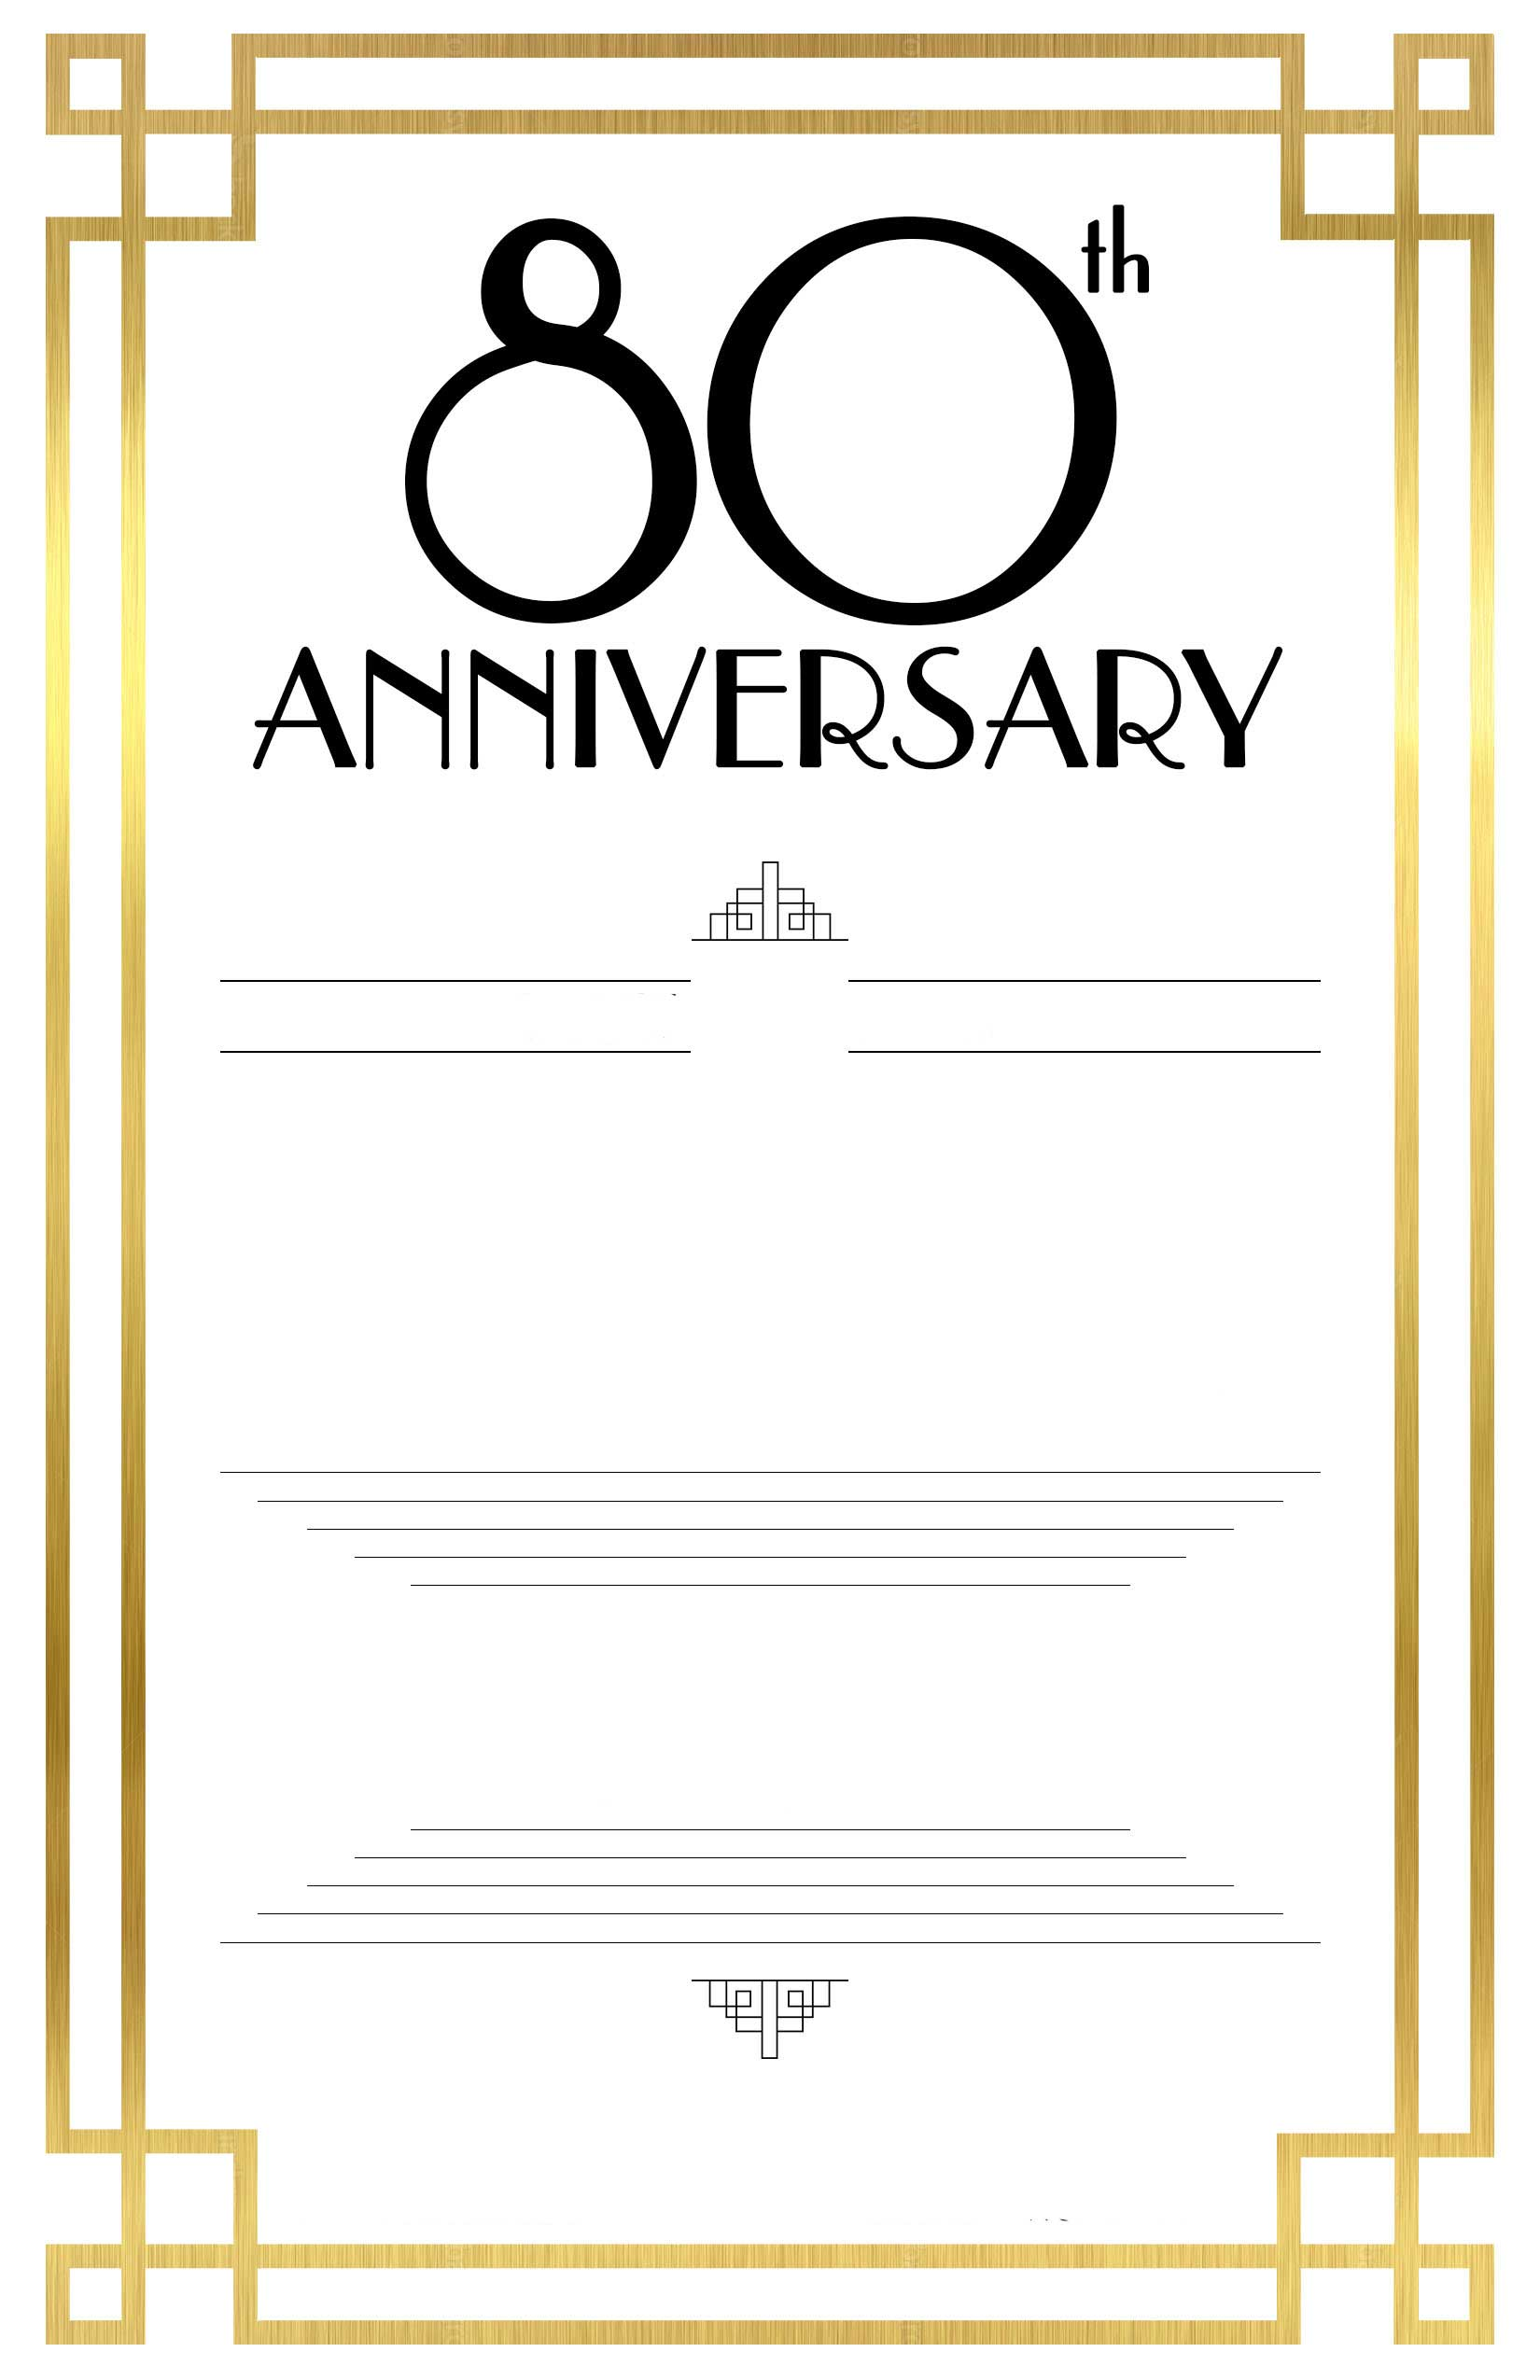 80th birthday invitations templates free - Kardas.klmphotography.co